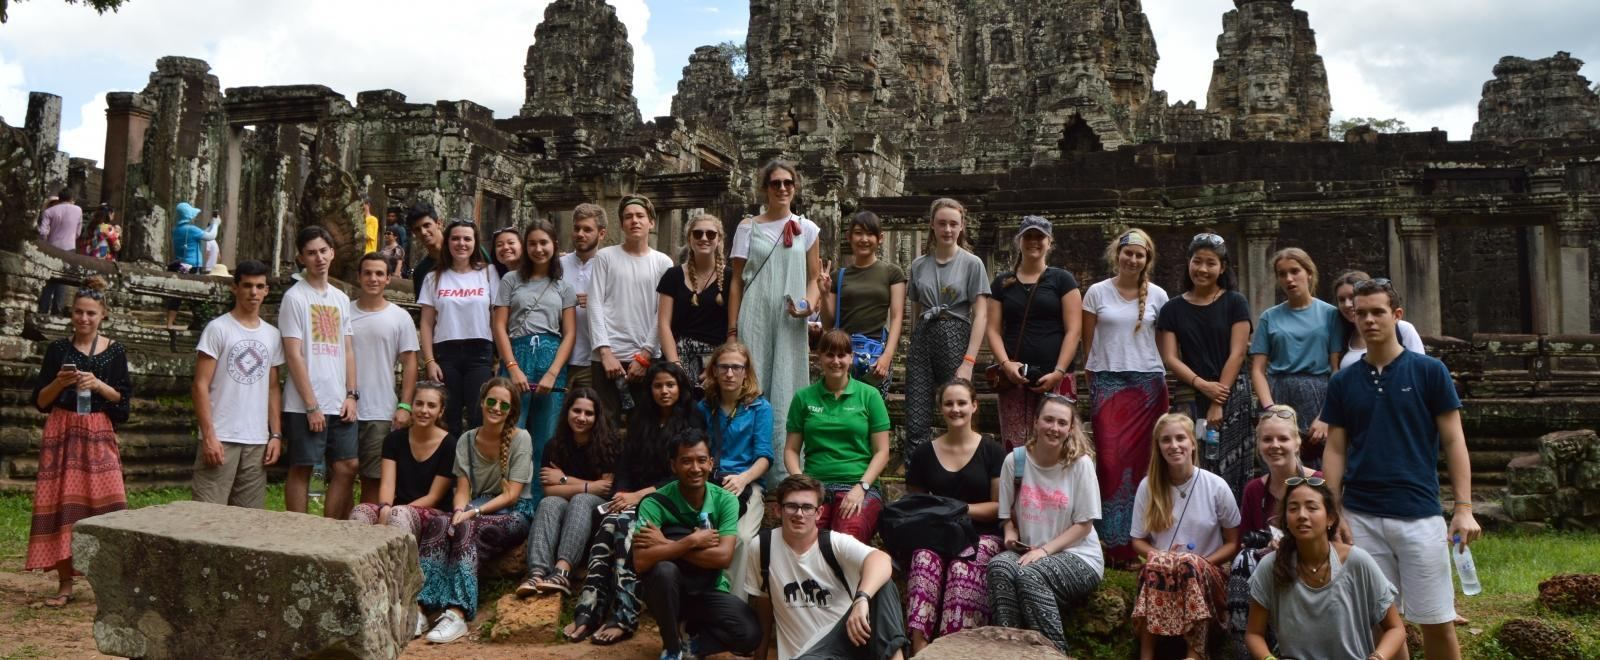 Teenage volunteers working with children in Cambodia use weekends to explore local attractions.